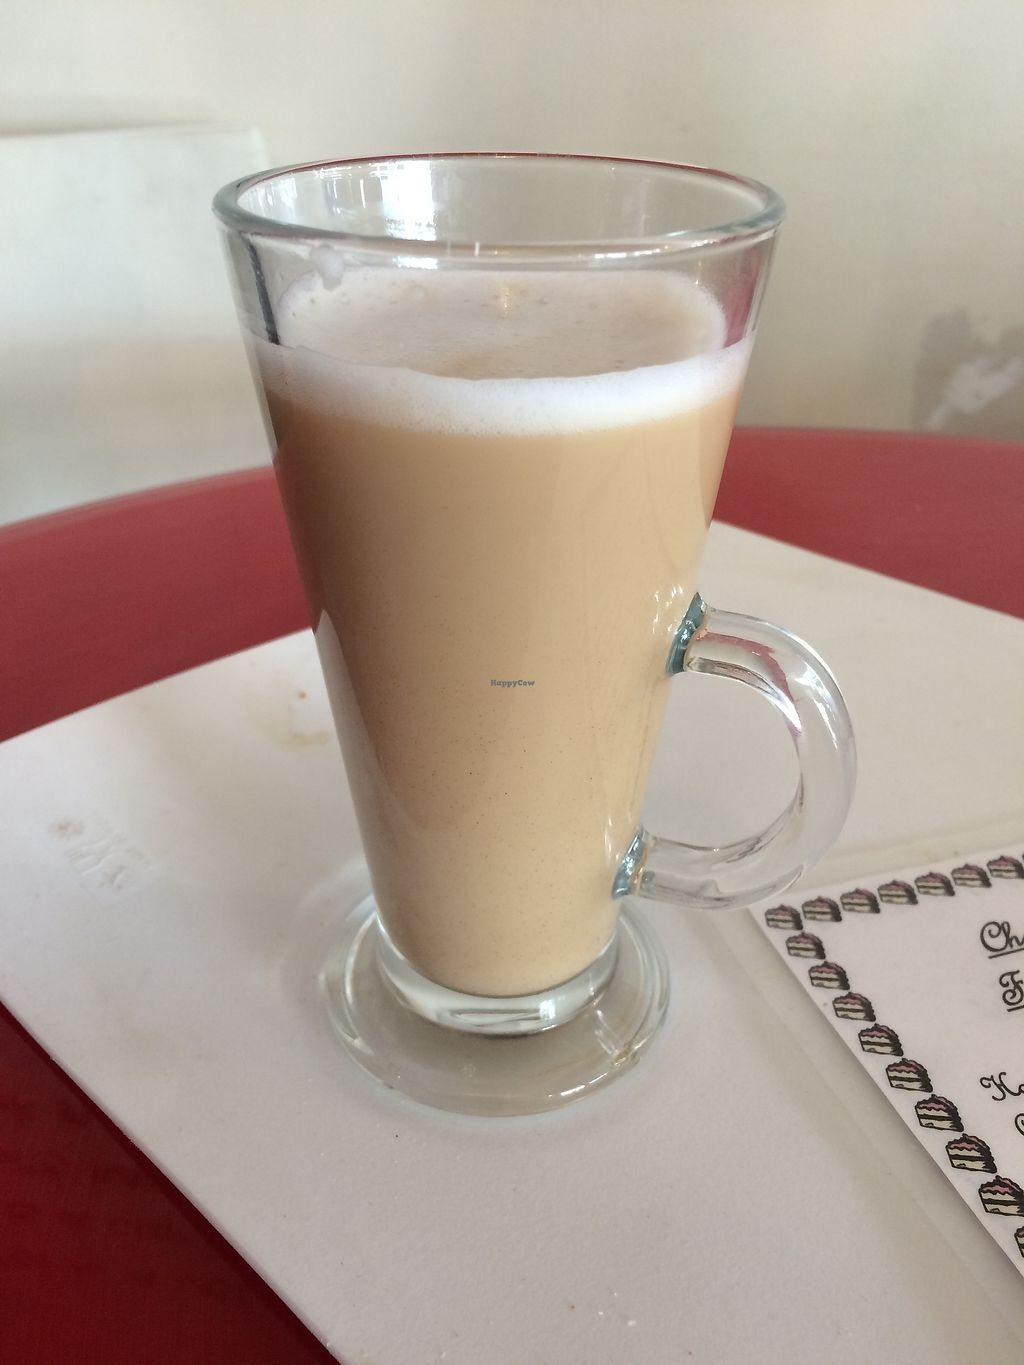 """Photo of Chapter Two Book Shop  by <a href=""""/members/profile/Hoggy"""">Hoggy</a> <br/>Coconut latte <br/> August 23, 2017  - <a href='/contact/abuse/image/98854/296172'>Report</a>"""